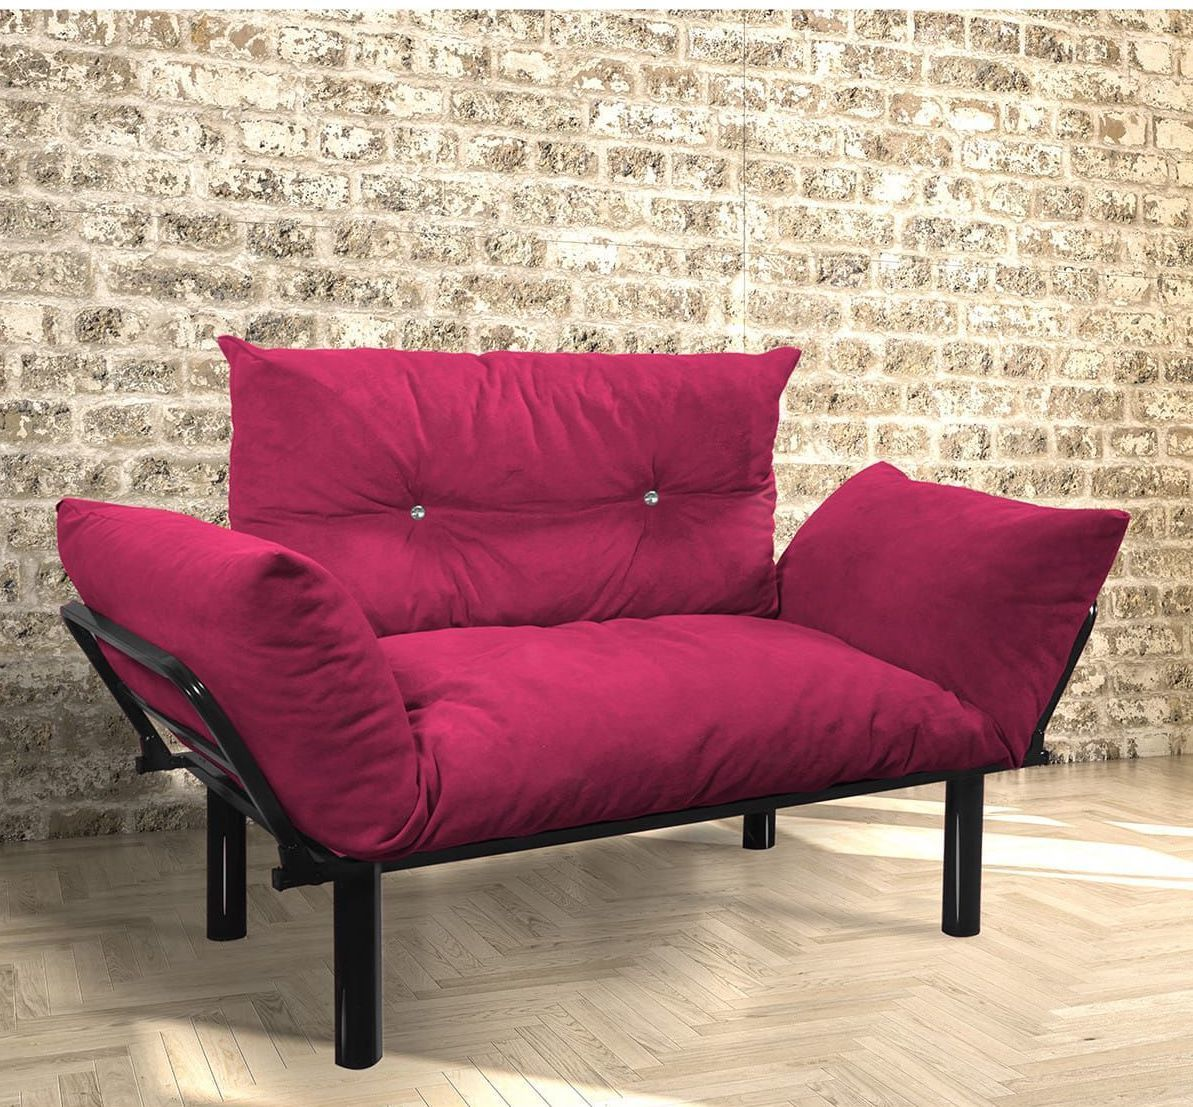 2 Kisilik Balkon Bahce Koltugu Murdum In 2020 Love Seat Furniture Colorful Loveseat